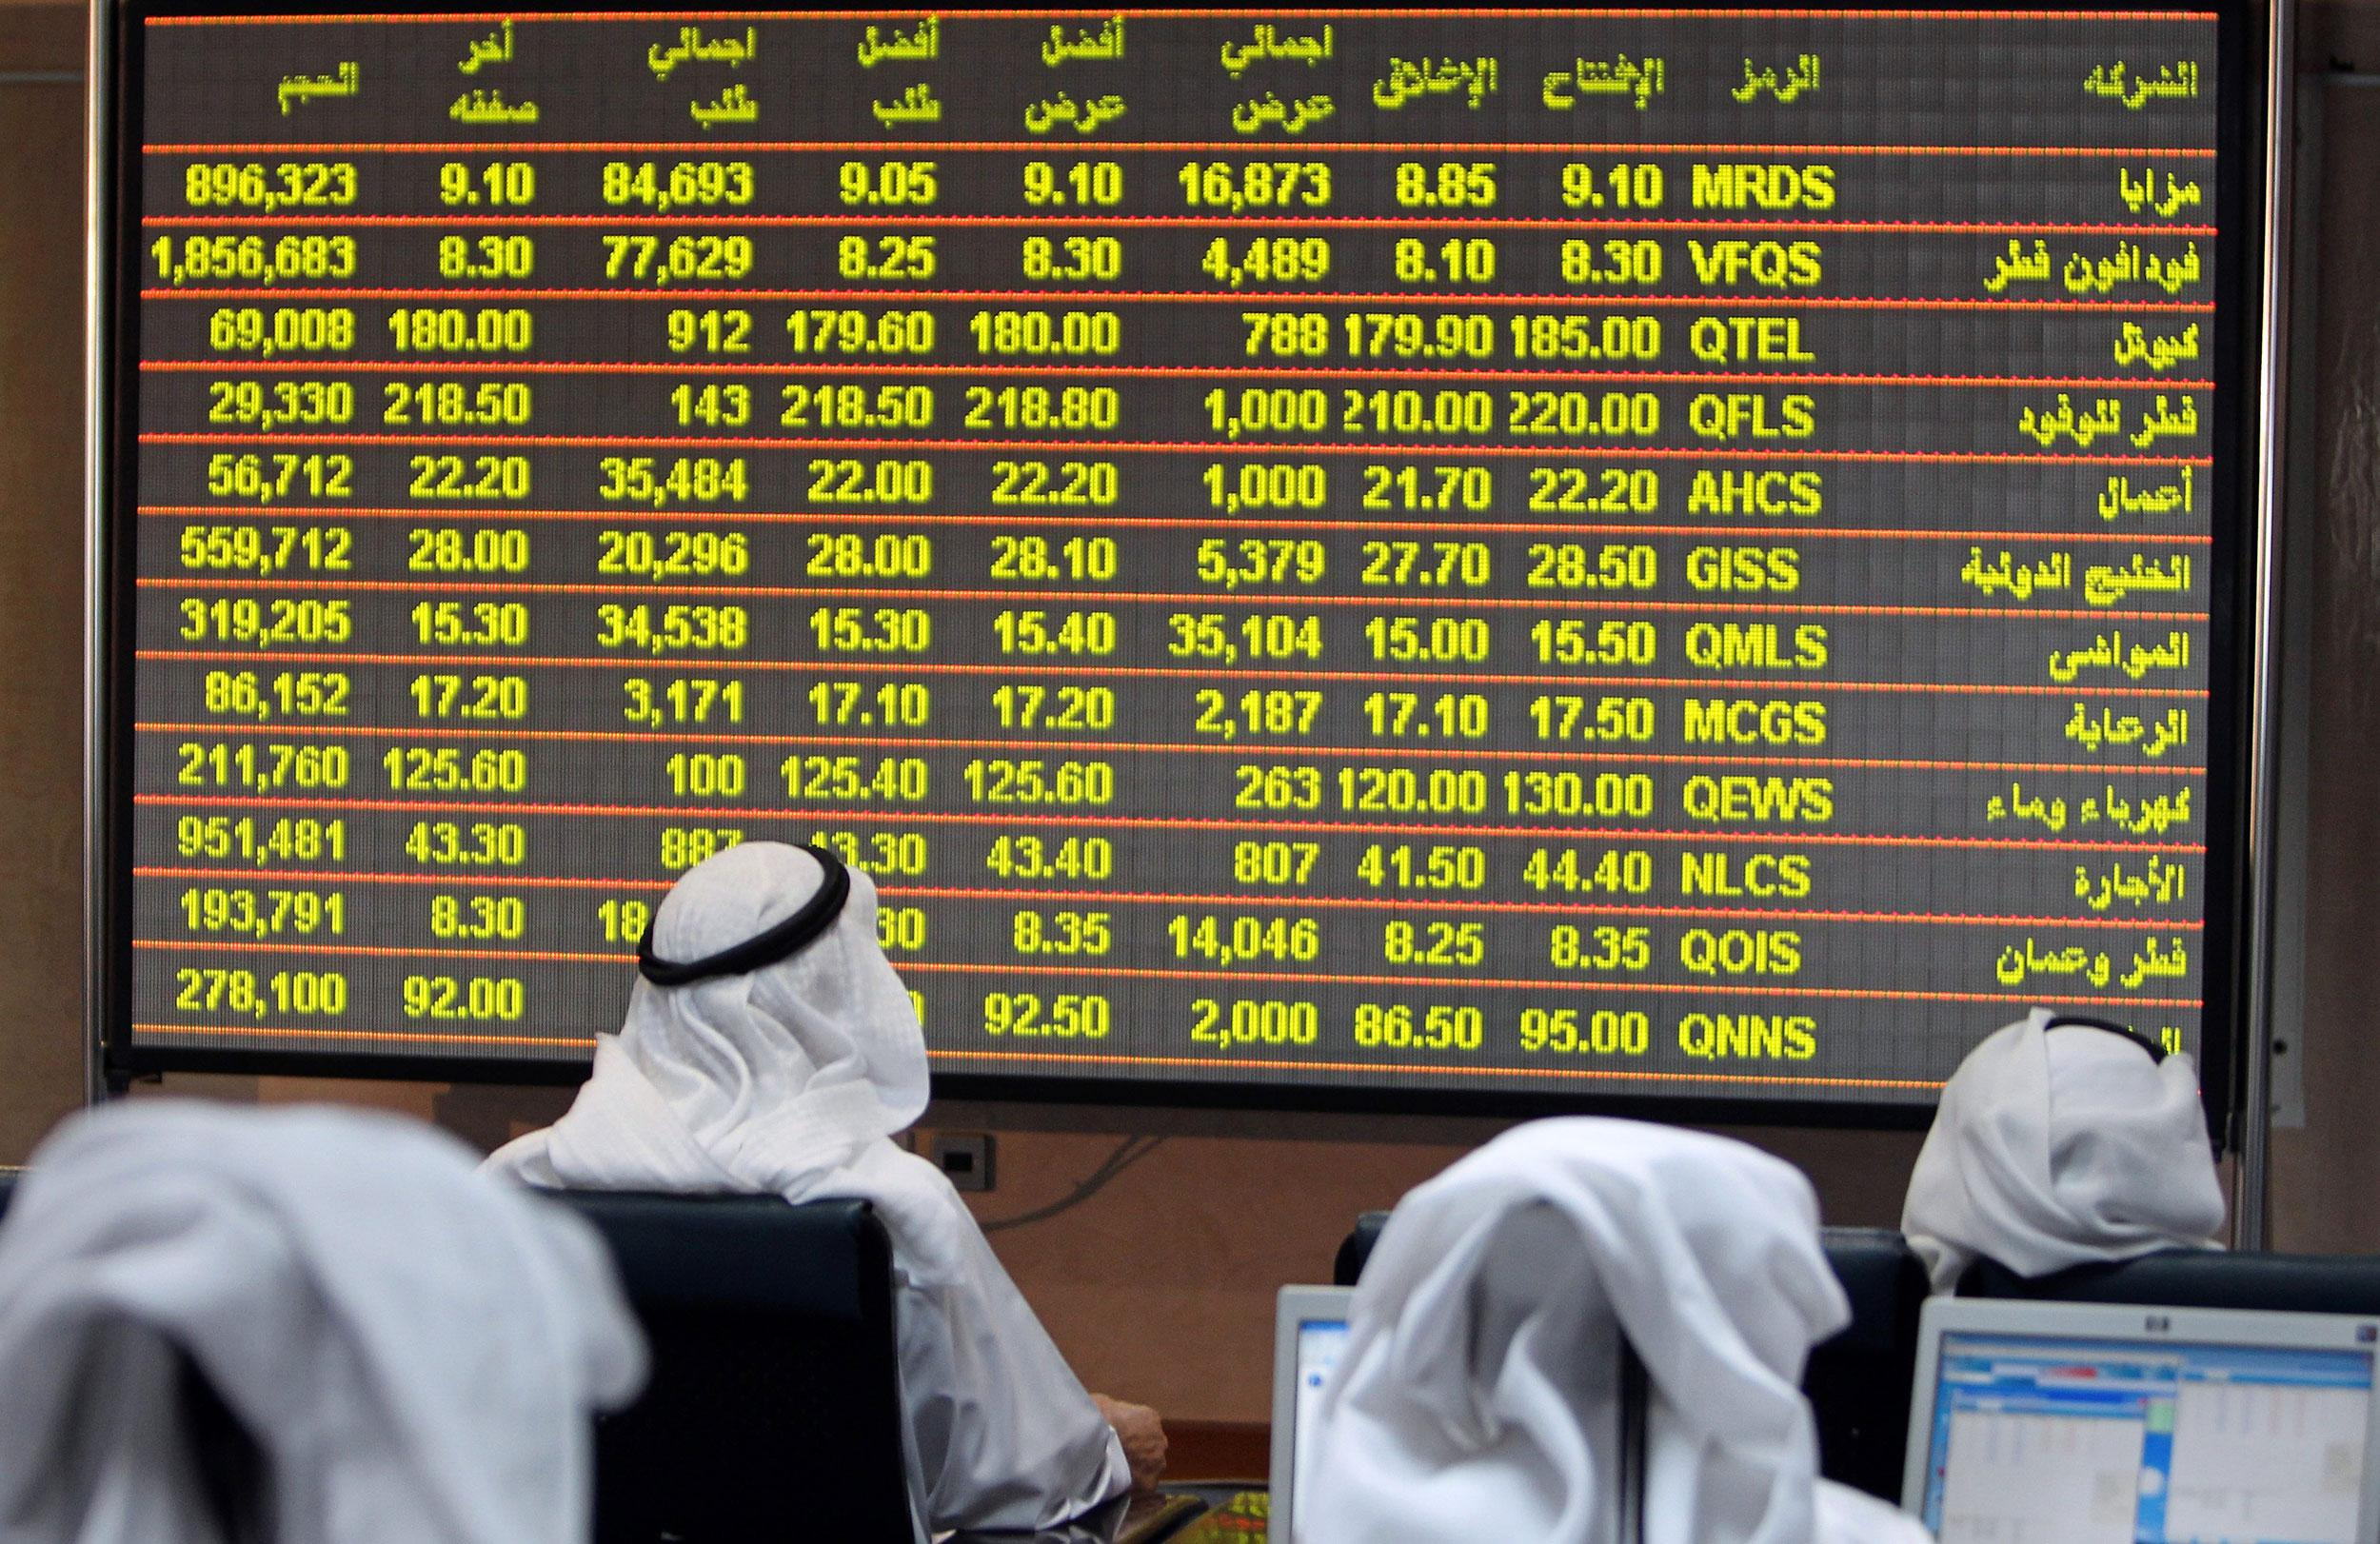 Arab stocks fell almost 25% in Q1 amid low oil prices and Covid-19 pandemic